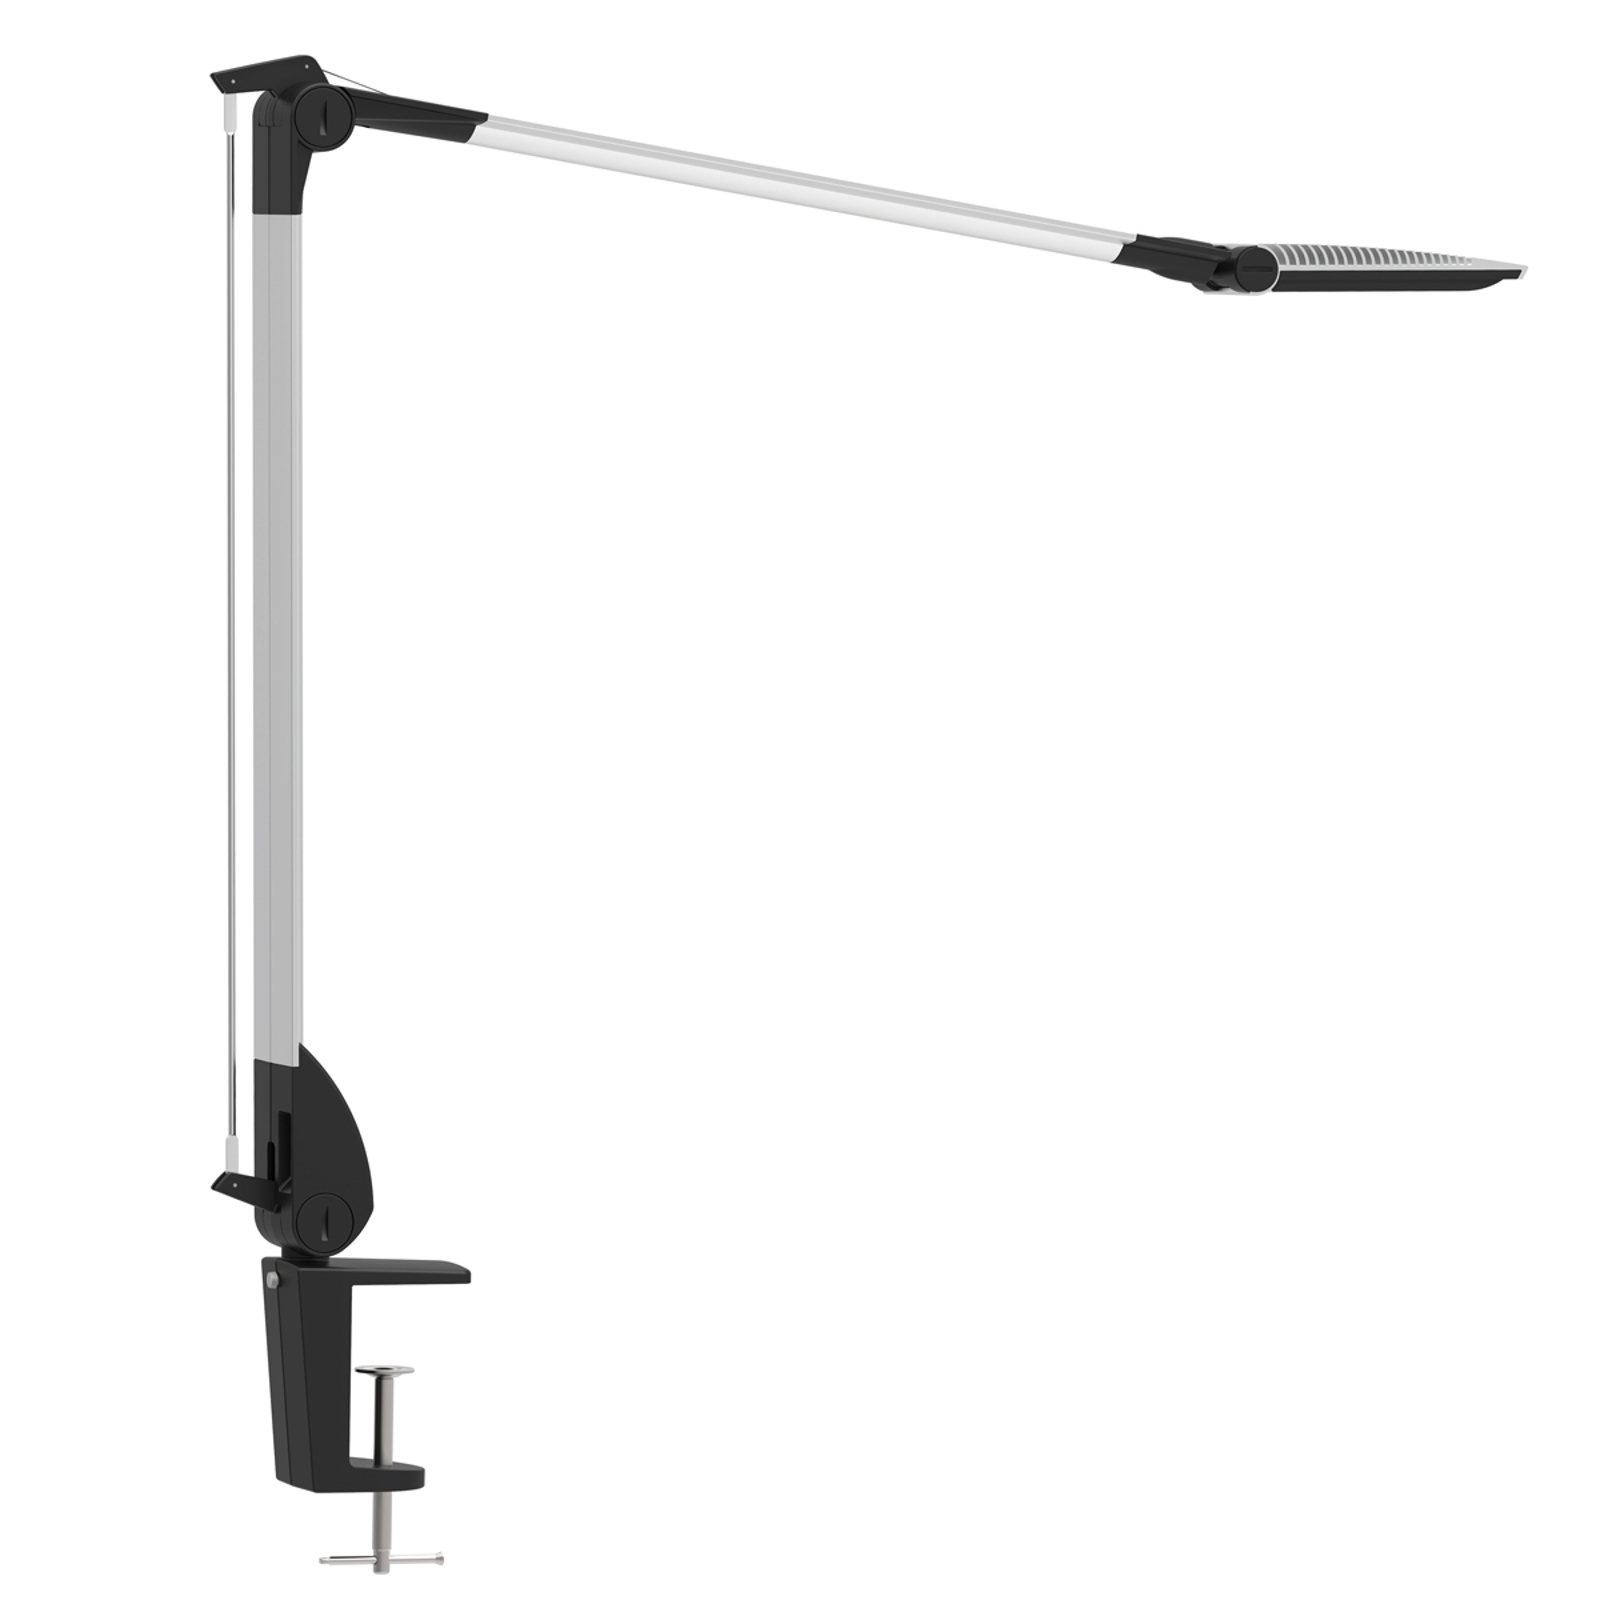 LED bureaulamp Optimus met klemvoet